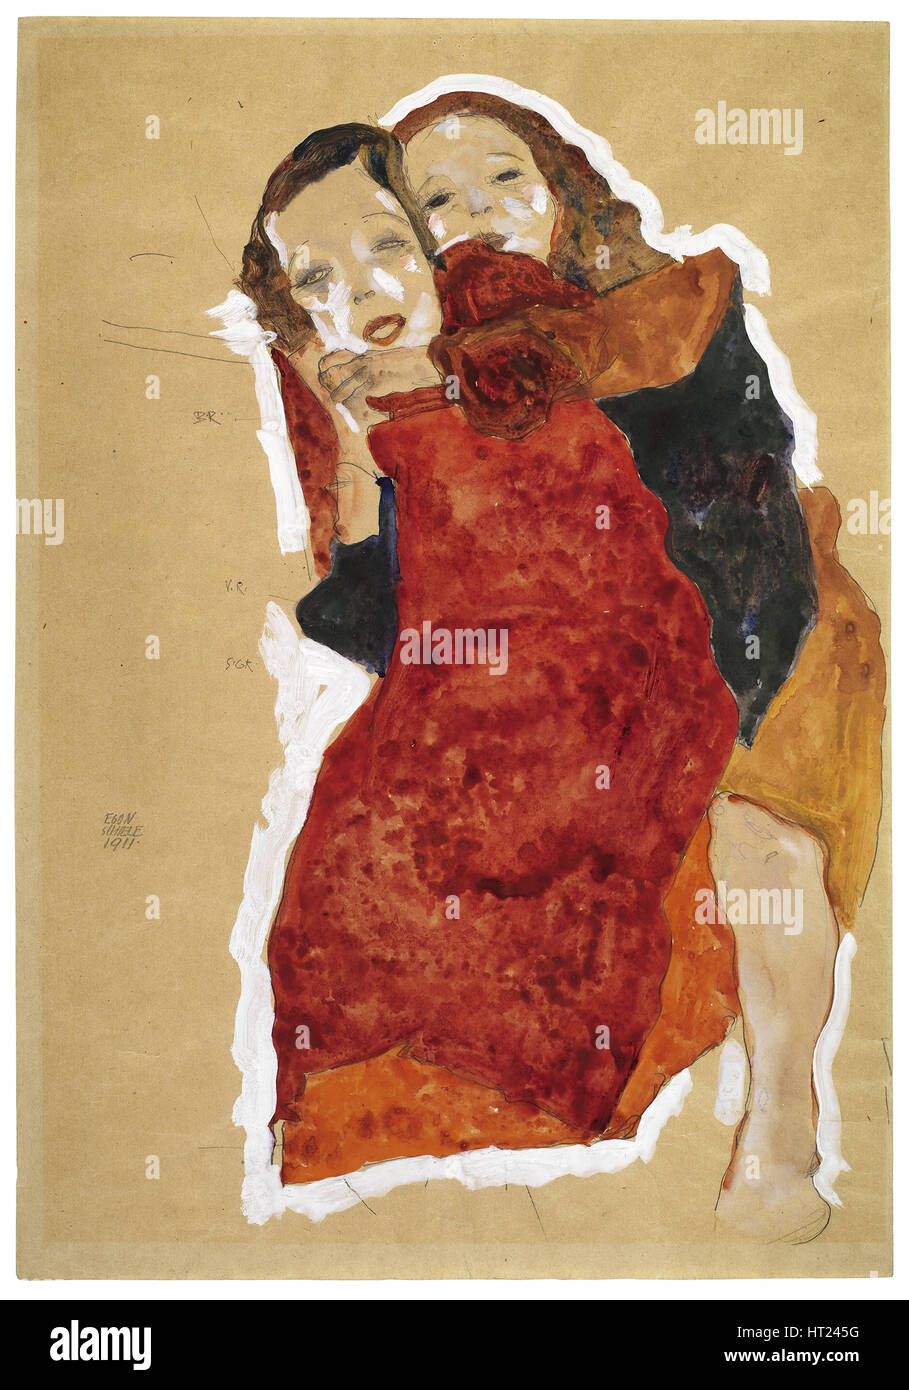 Two girls, 1911. Artist: Schiele, Egon (1890-1918) - Stock Image